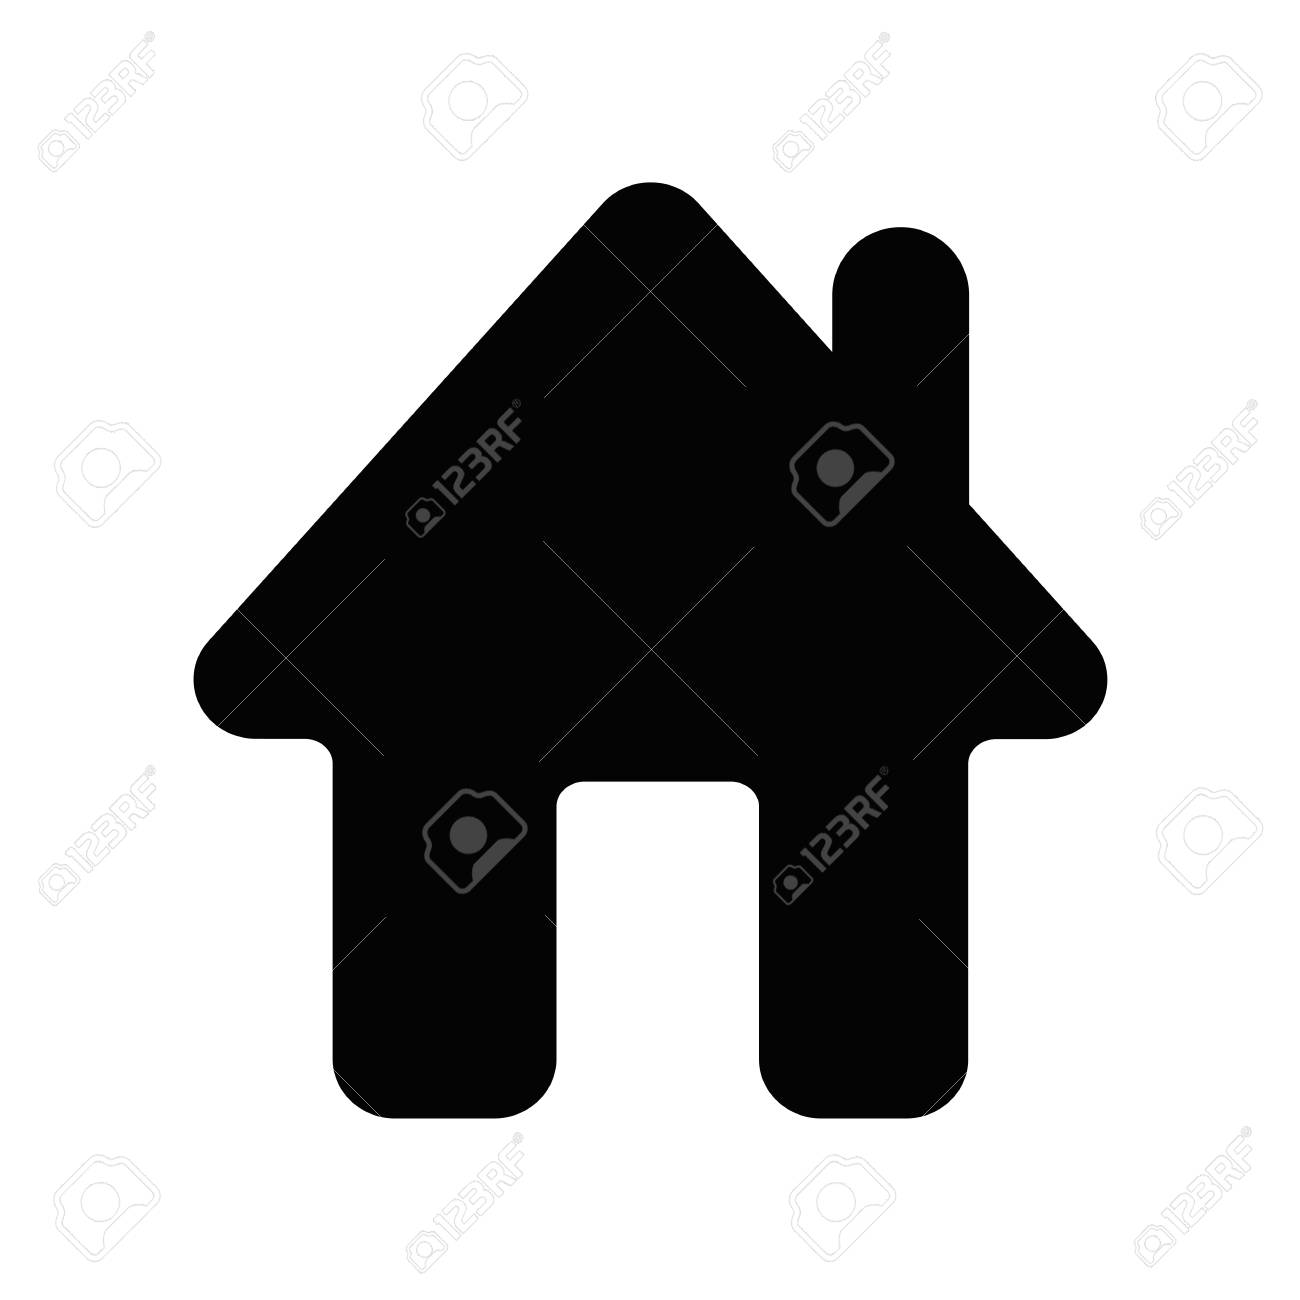 home icon house symbol vector illustration royalty free cliparts rh 123rf com home icon vector png android home icon vector